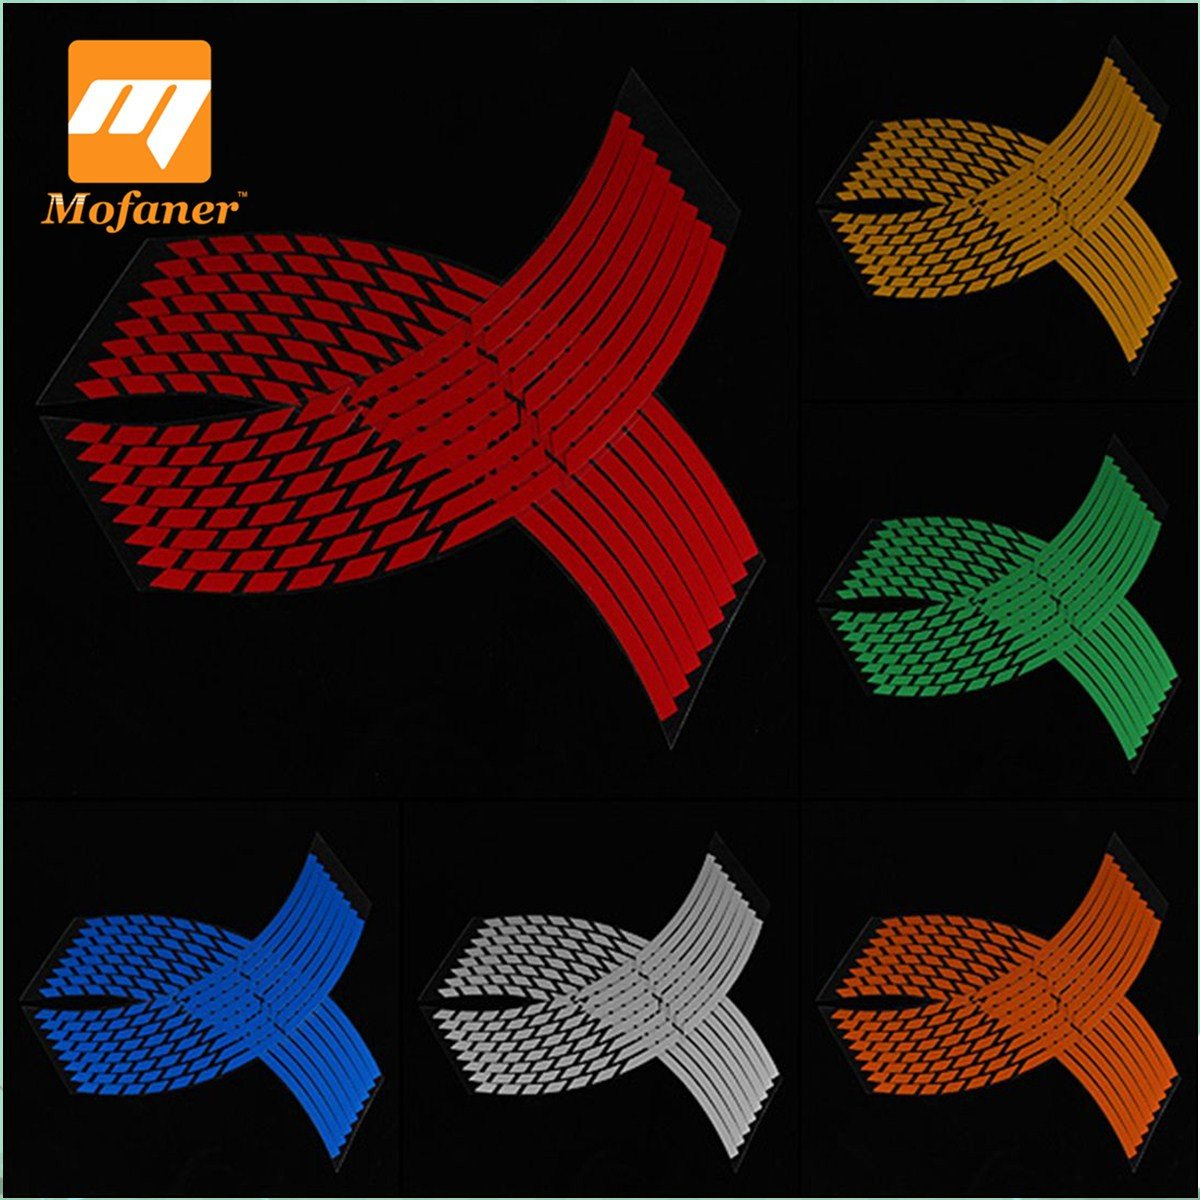 Mofaner 16 Strips Reflective Motorcycle Car Bike Wheel Stickers Rim Stripe Wheel Decal Tape Sticker 16-18 Inch For Kawasaki